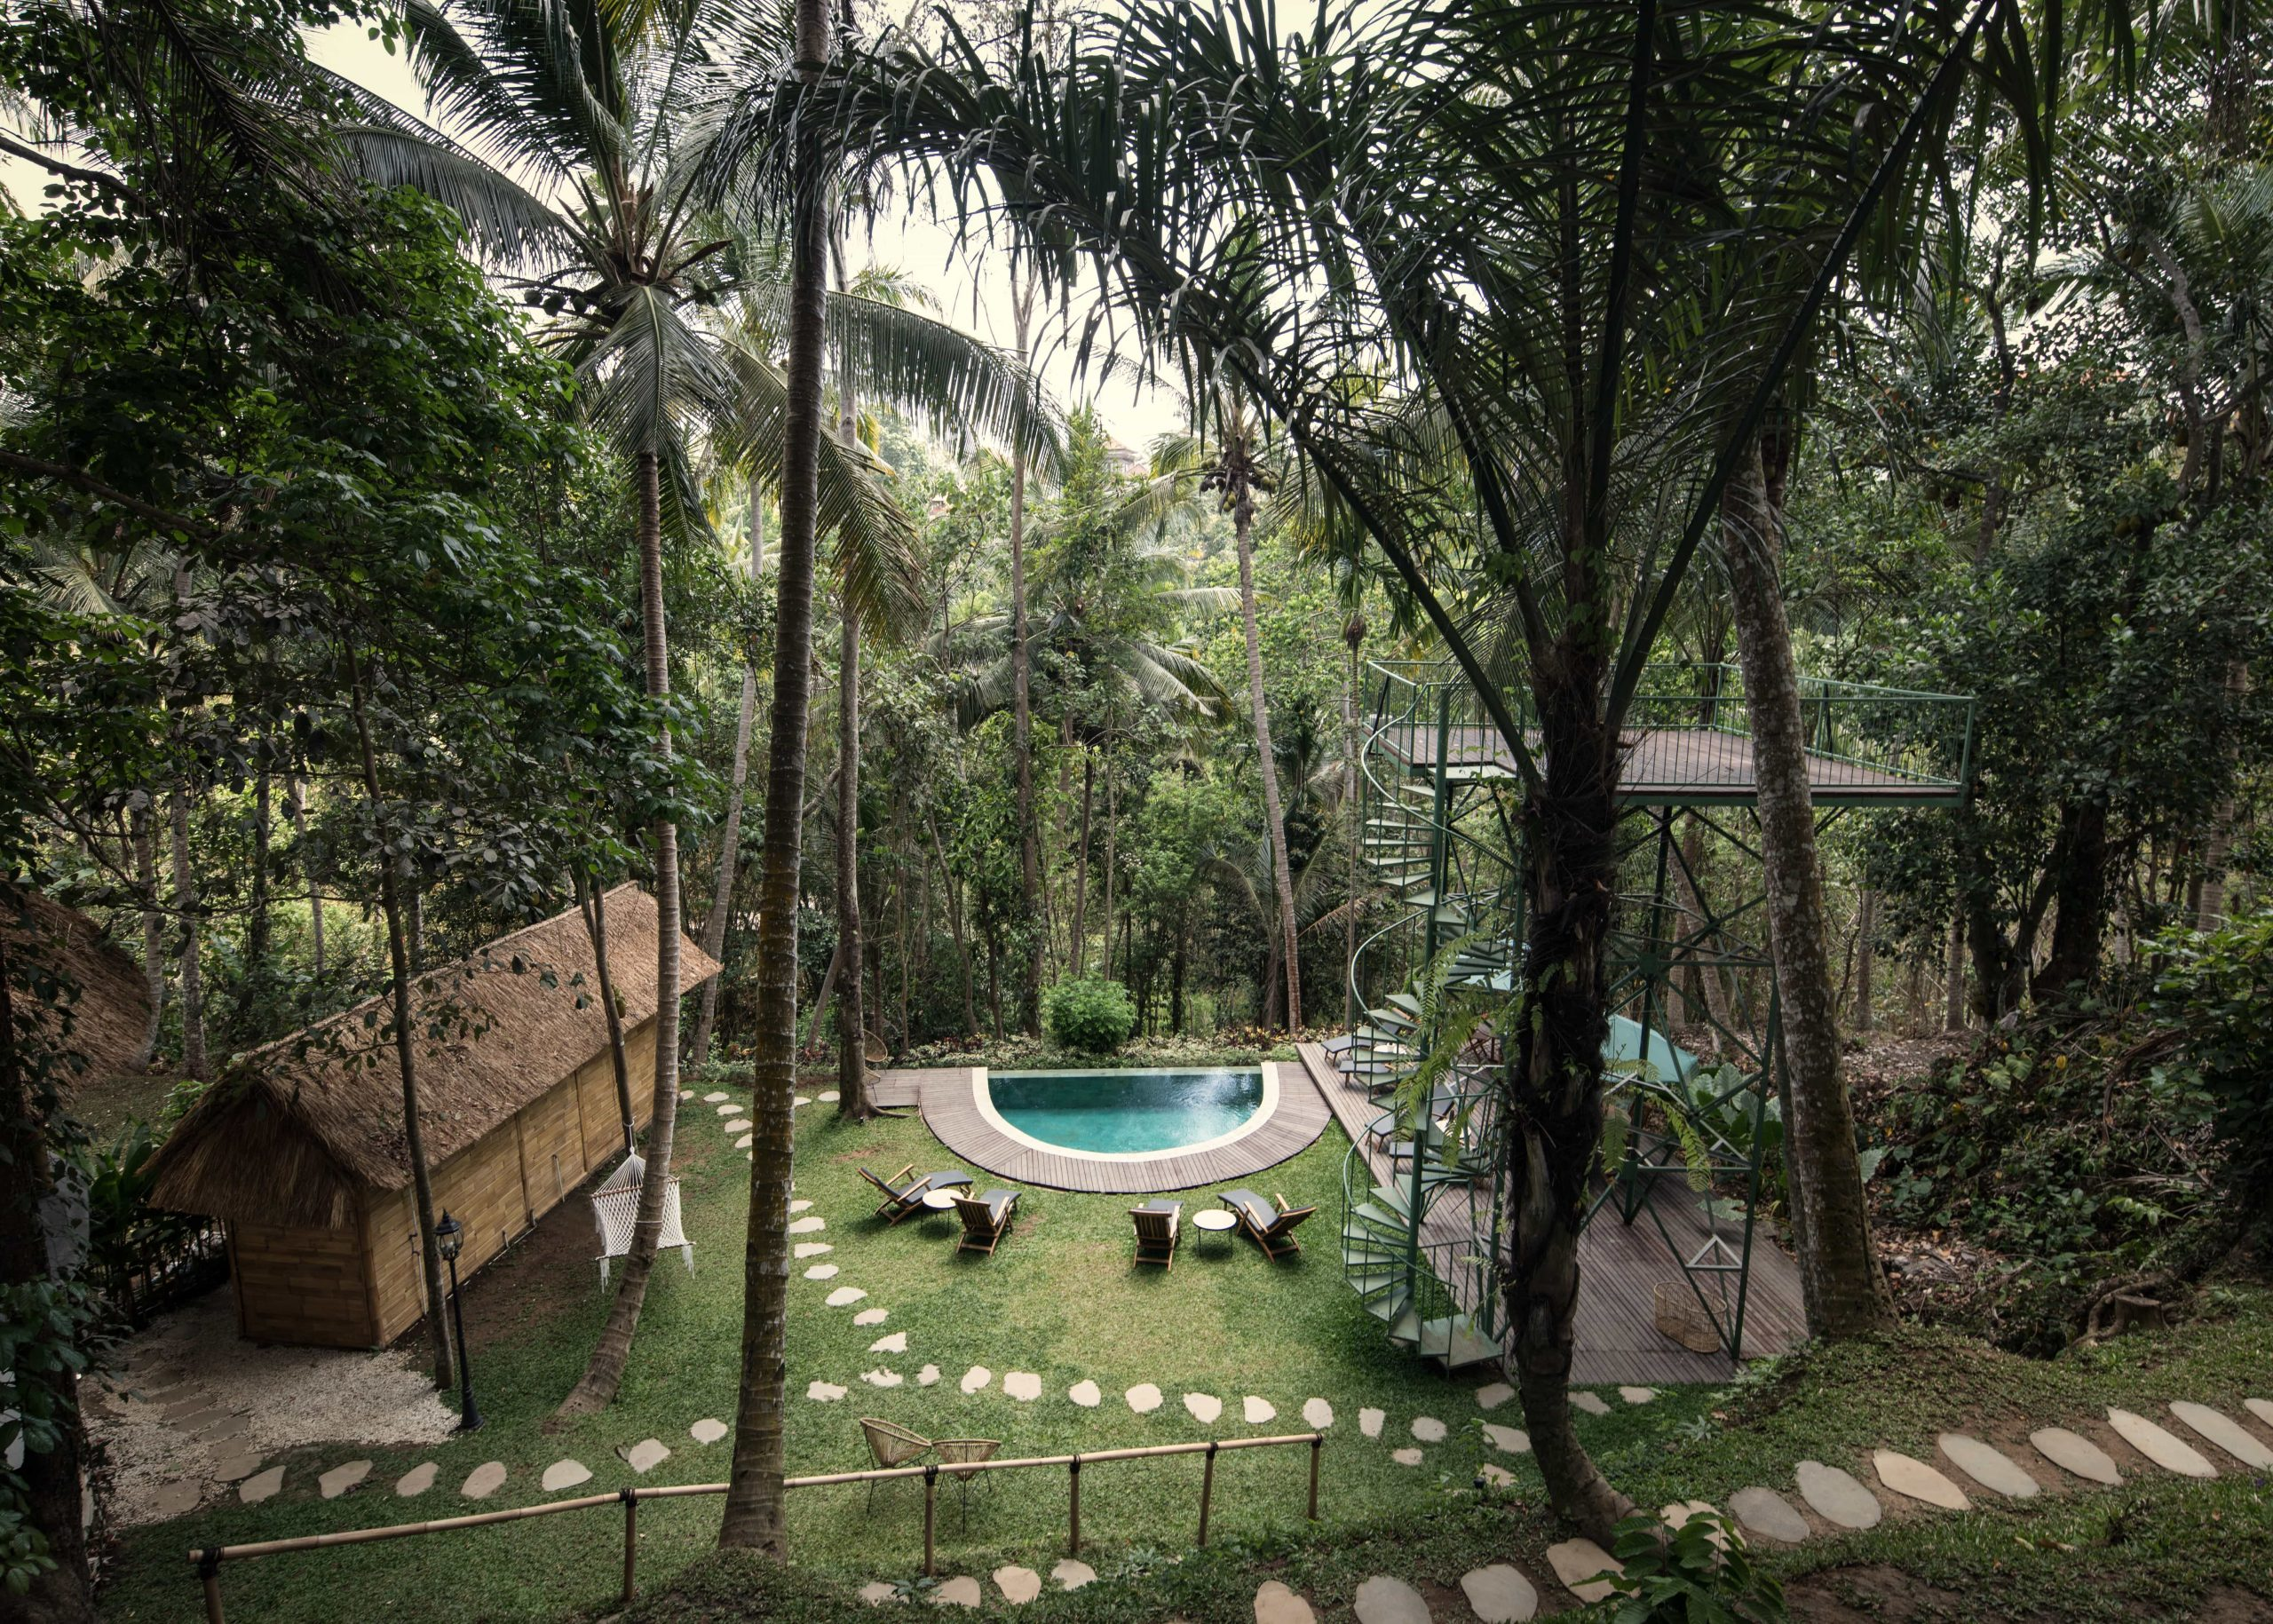 Staying at Lift Bali